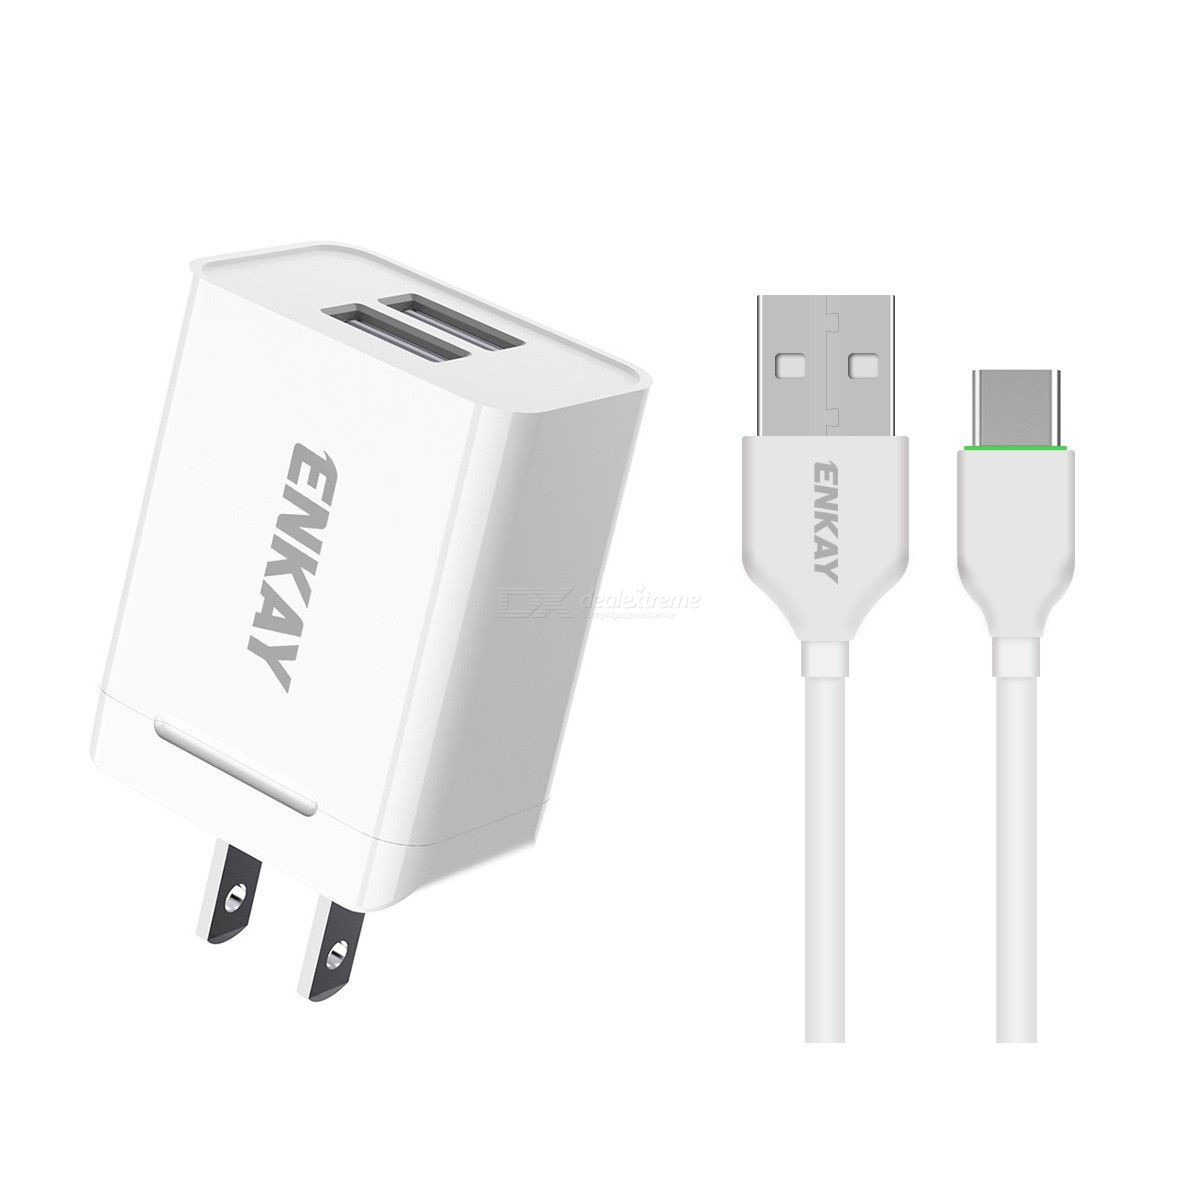 Hat-prince enkay 10.5w 2.1a adaptive charging us plug dual usb travel power adapter with micro usb cable